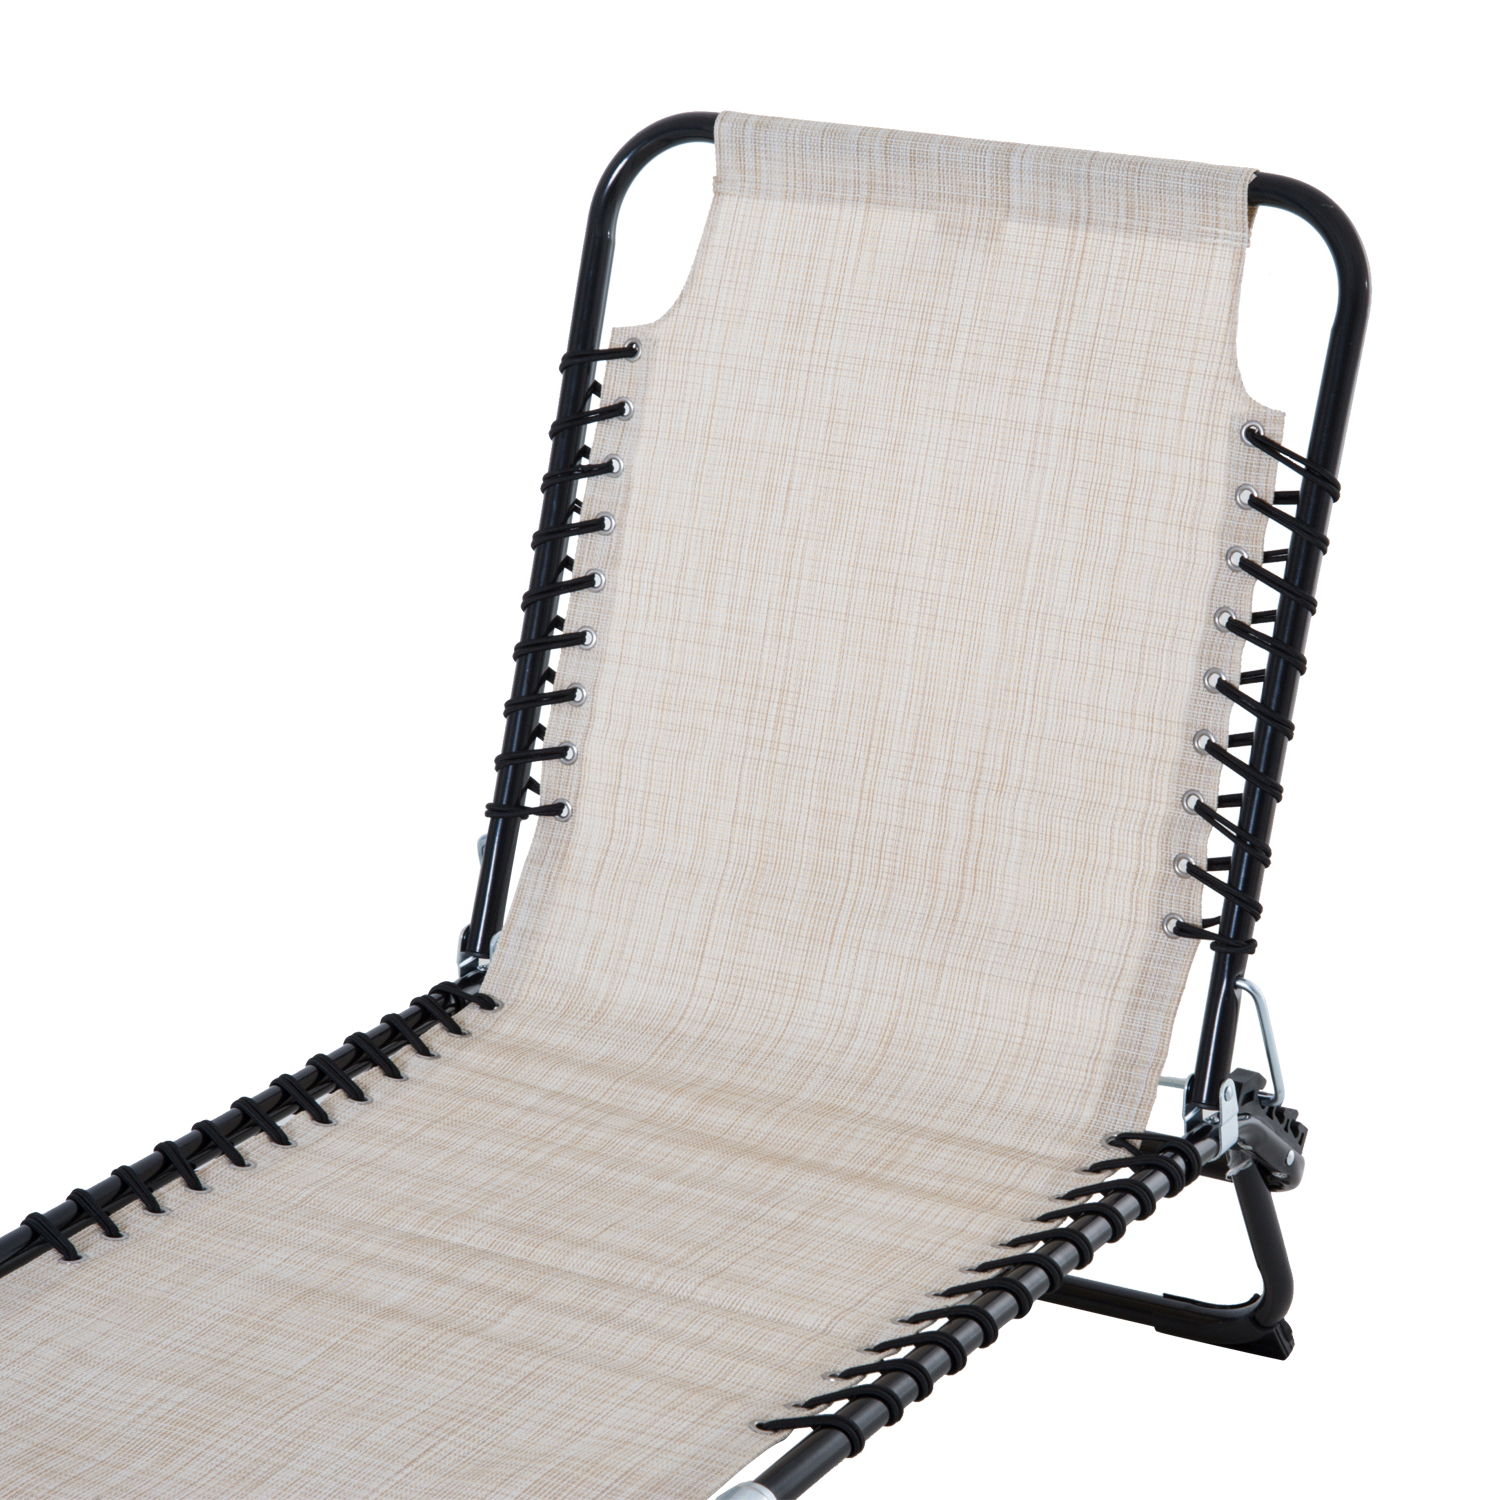 Newest Outsunny Portable 3 Position Reclining Folding Beach Chaise Lounge Chair In 3 Position Portable Reclining Beach Chaise Lounges (View 5 of 25)